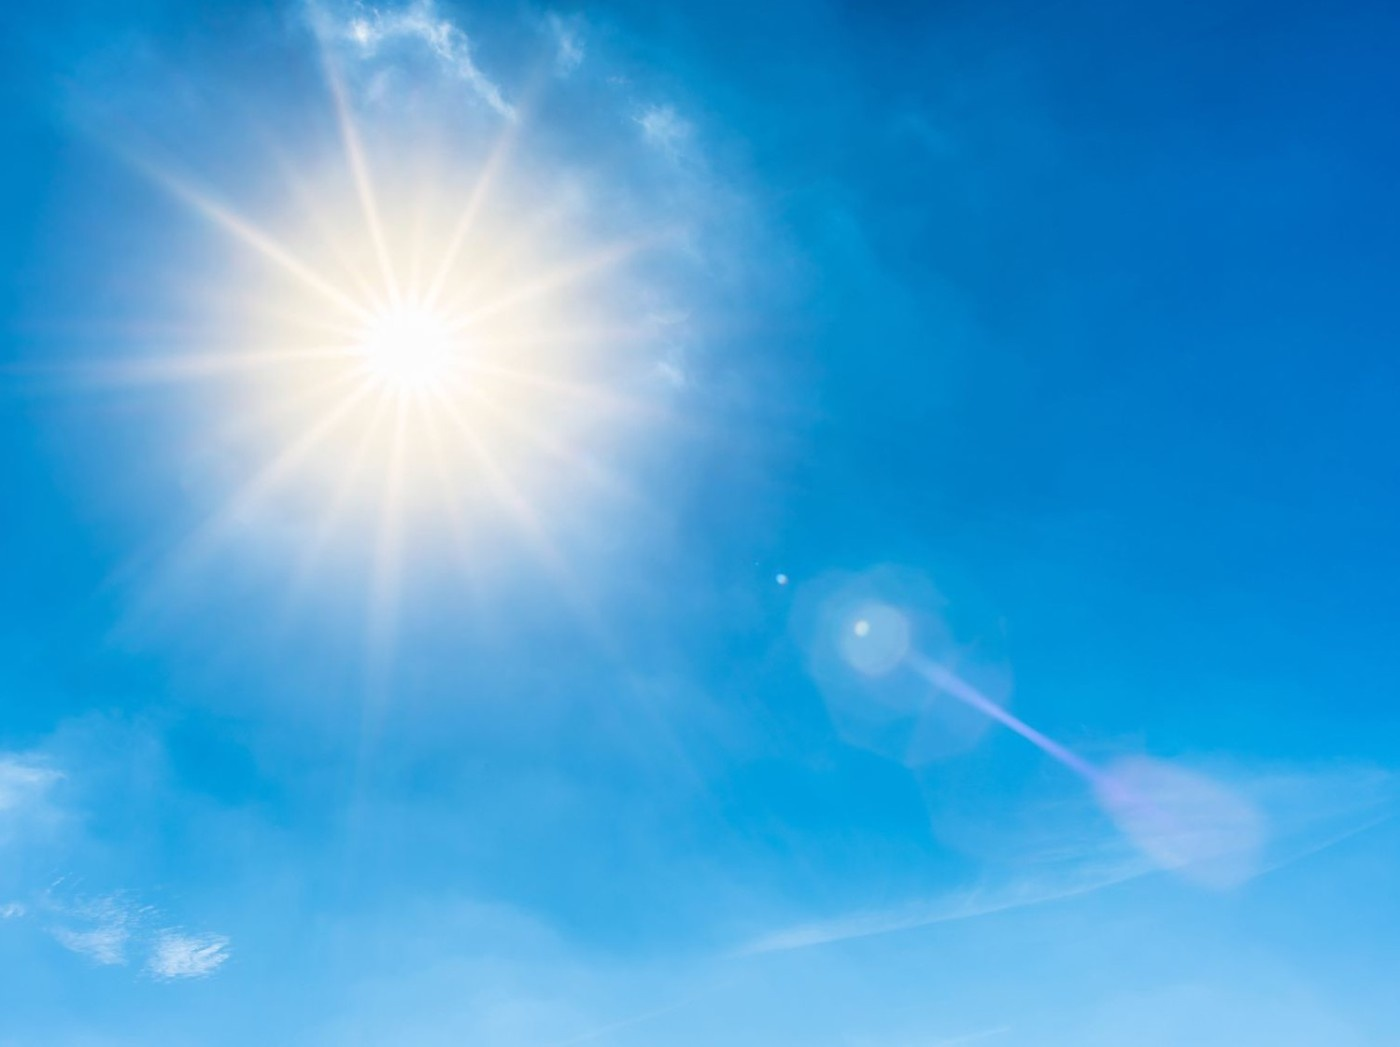 Sonne-blauer-Himmel_John-Smith_Fotolia_163387682_Subscription_Monthly_M